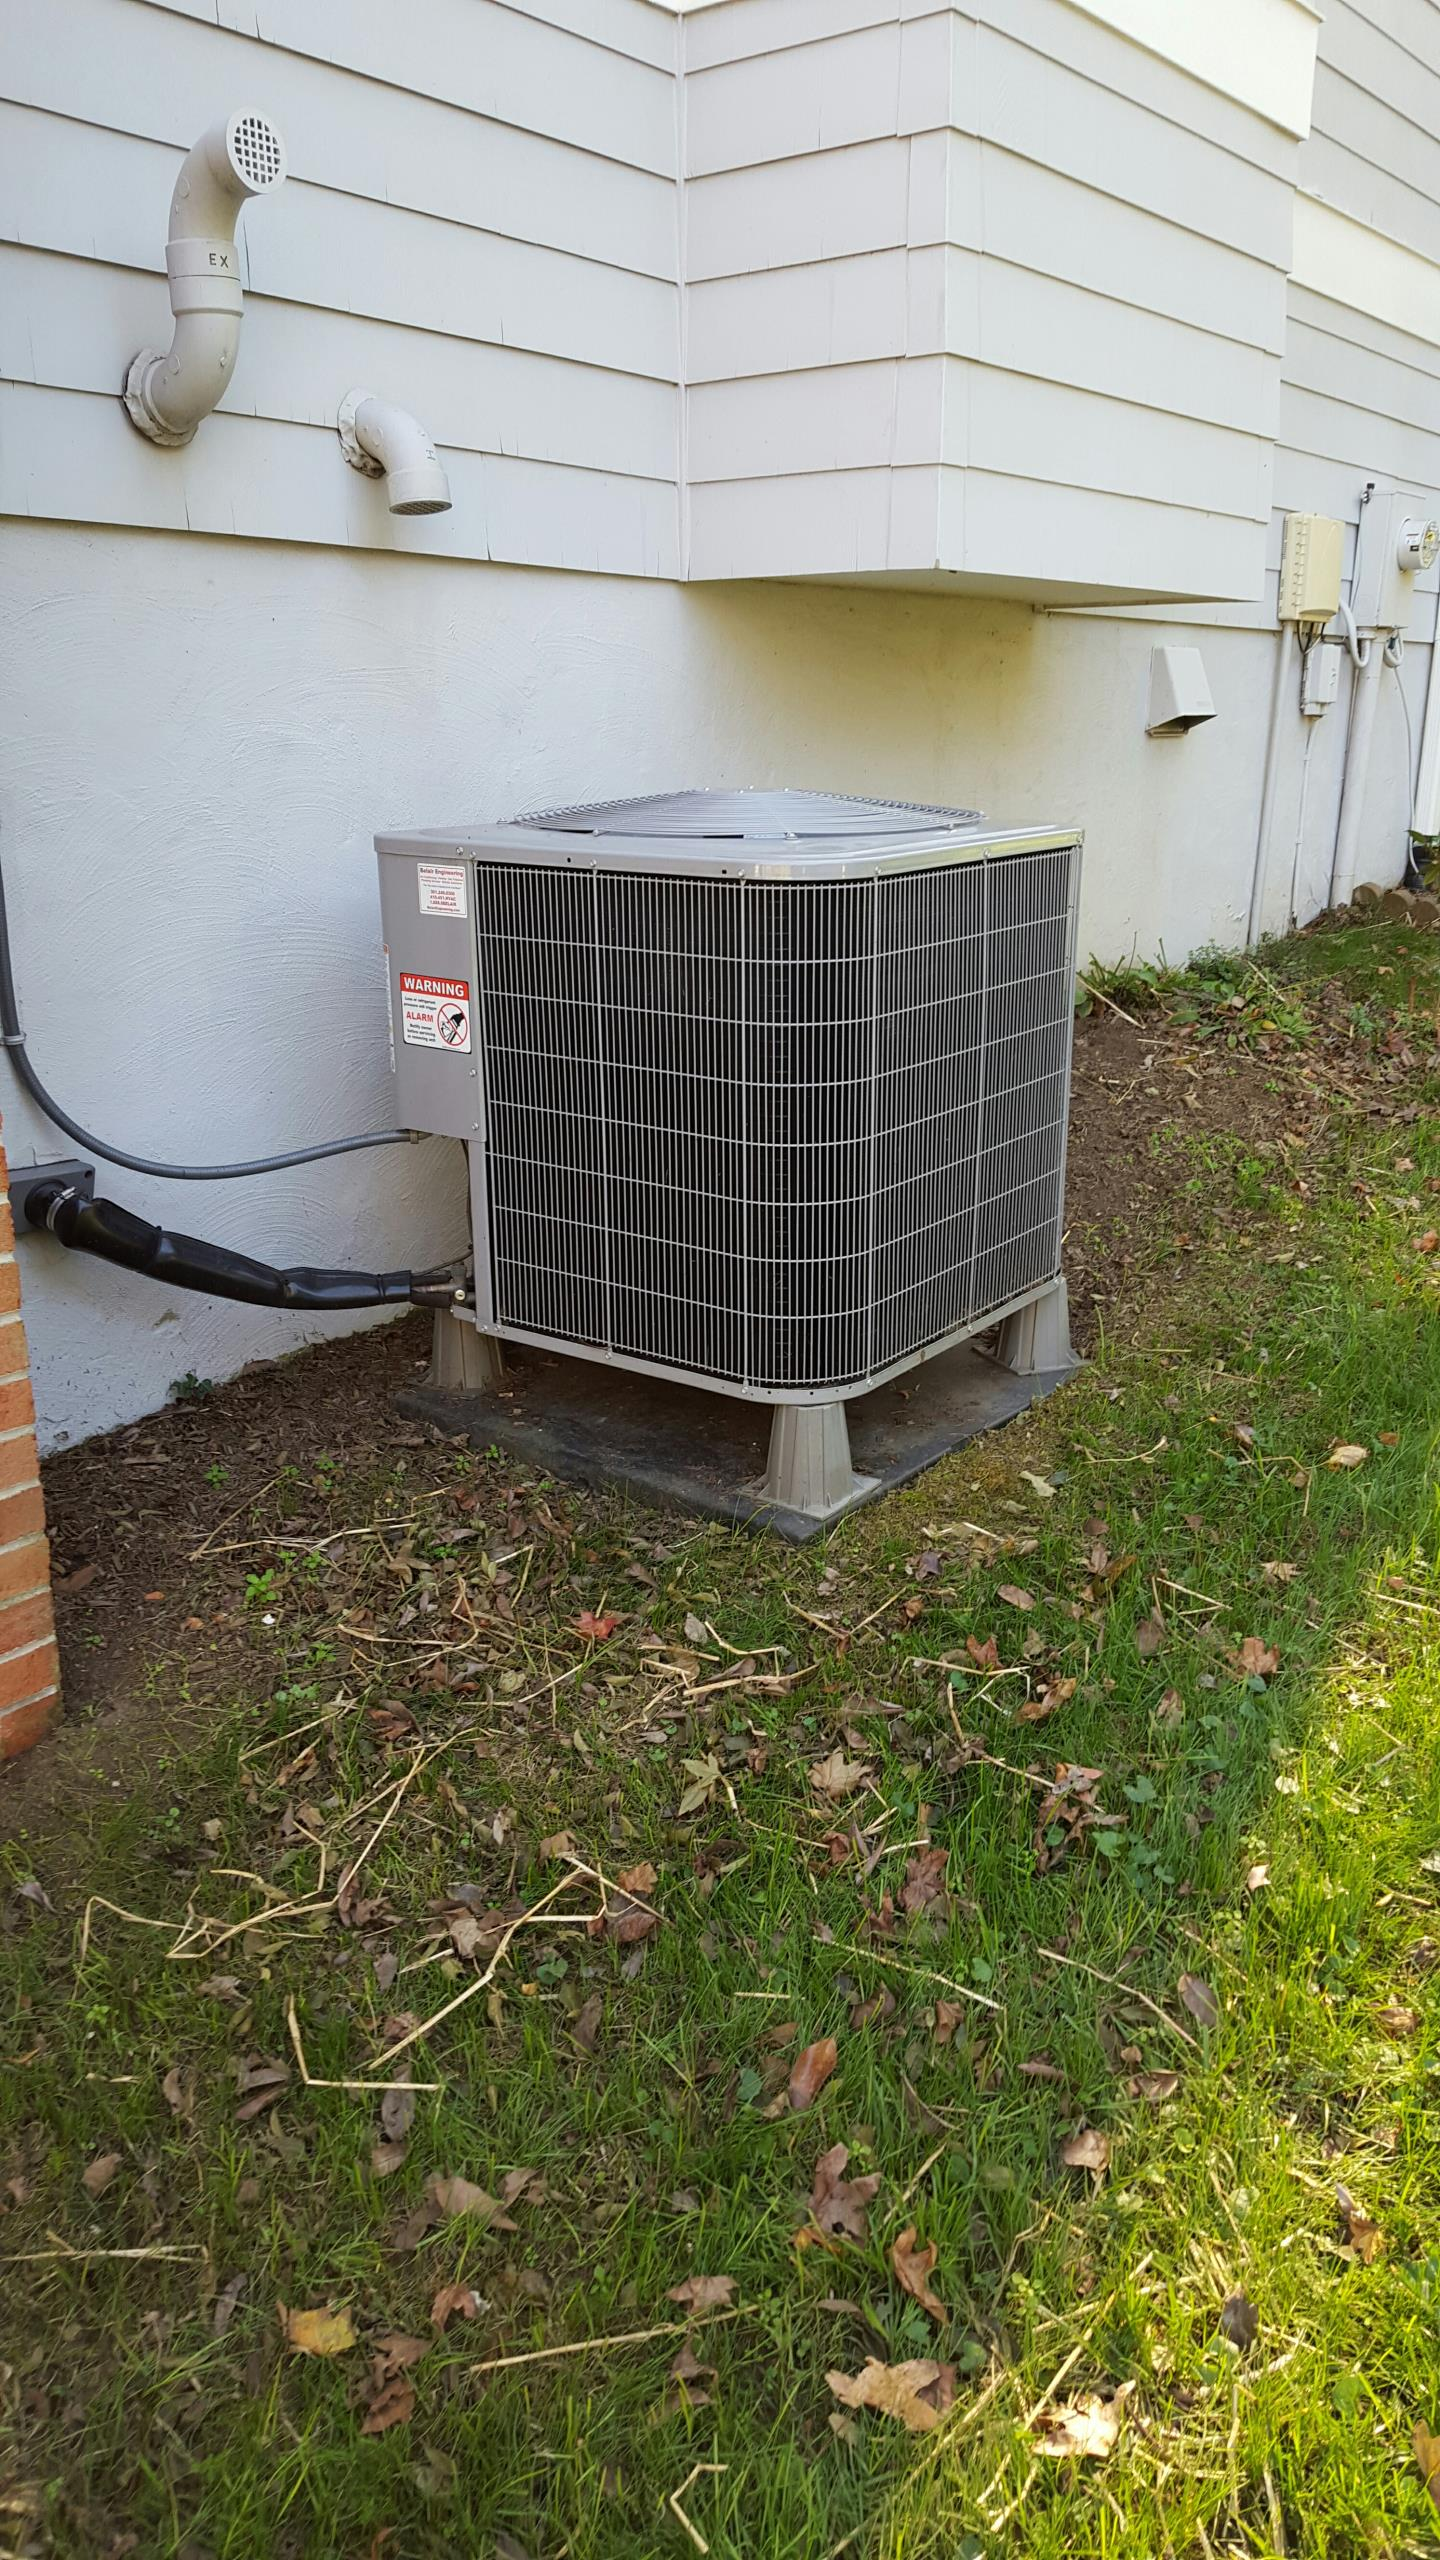 Gambrills, MD - Carrier heat pump heating & air conditioning system furnace filter replacement installation repair service call in Gambrills Maryland